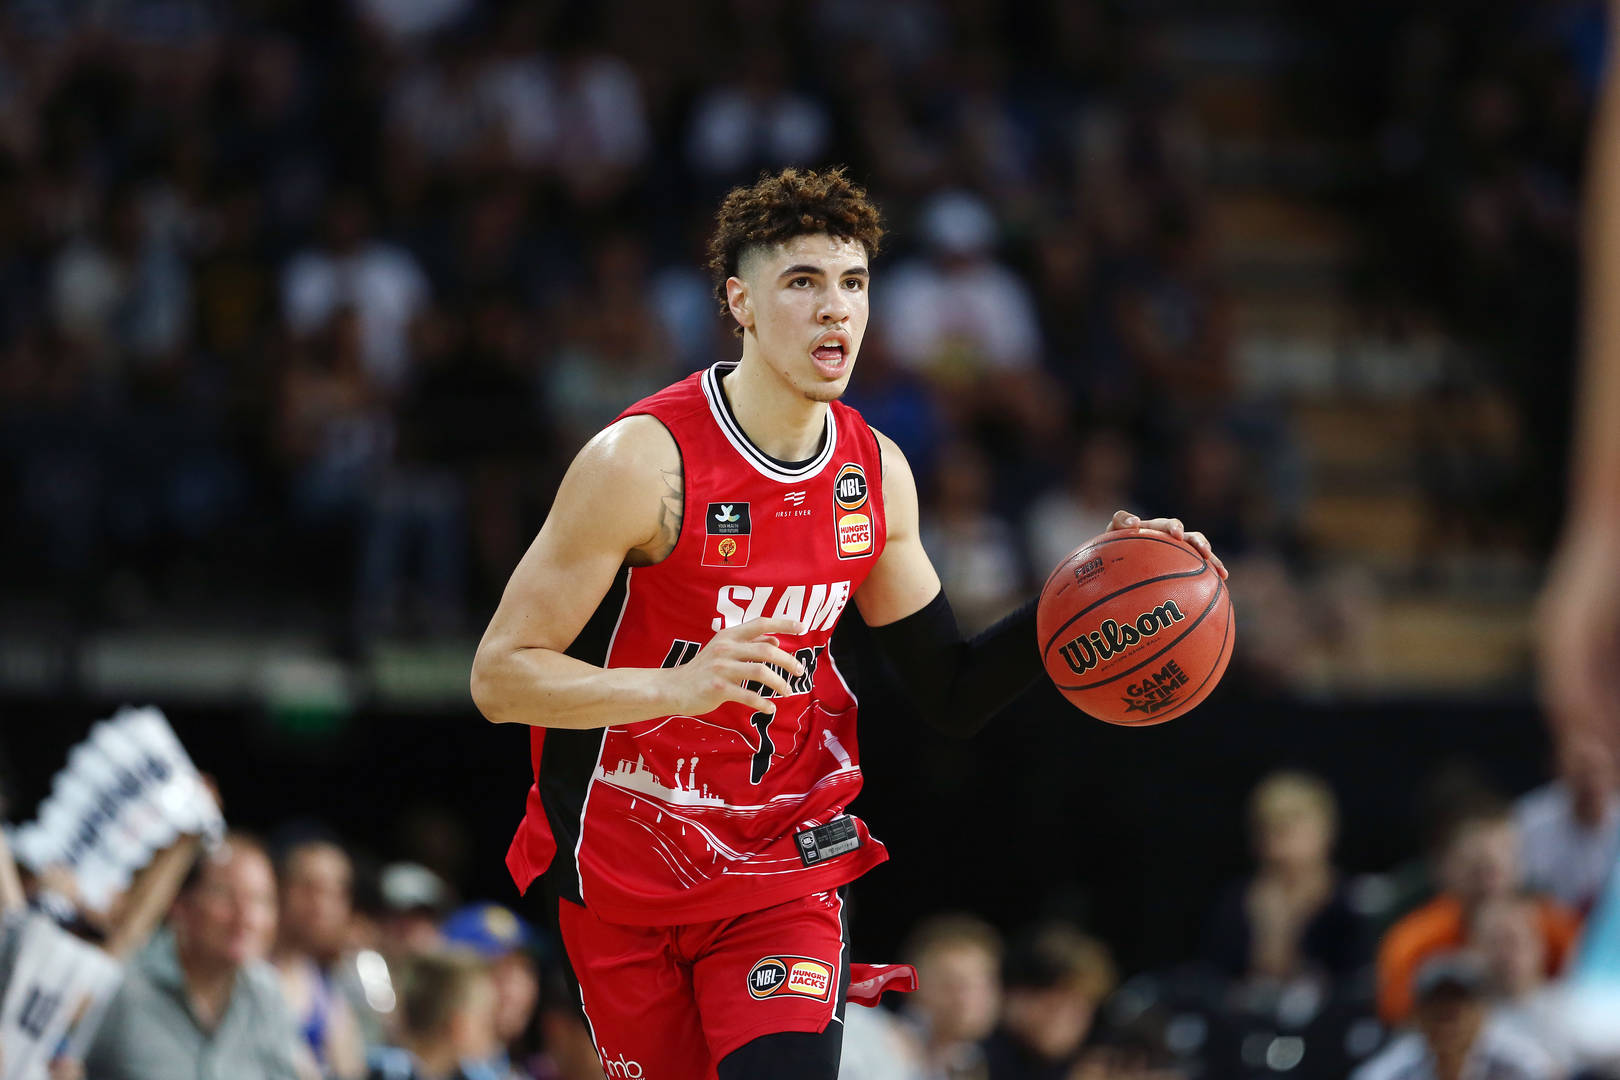 National Basketball Association hopeful LaMelo Ball reportedly buys Australian pro team he played for